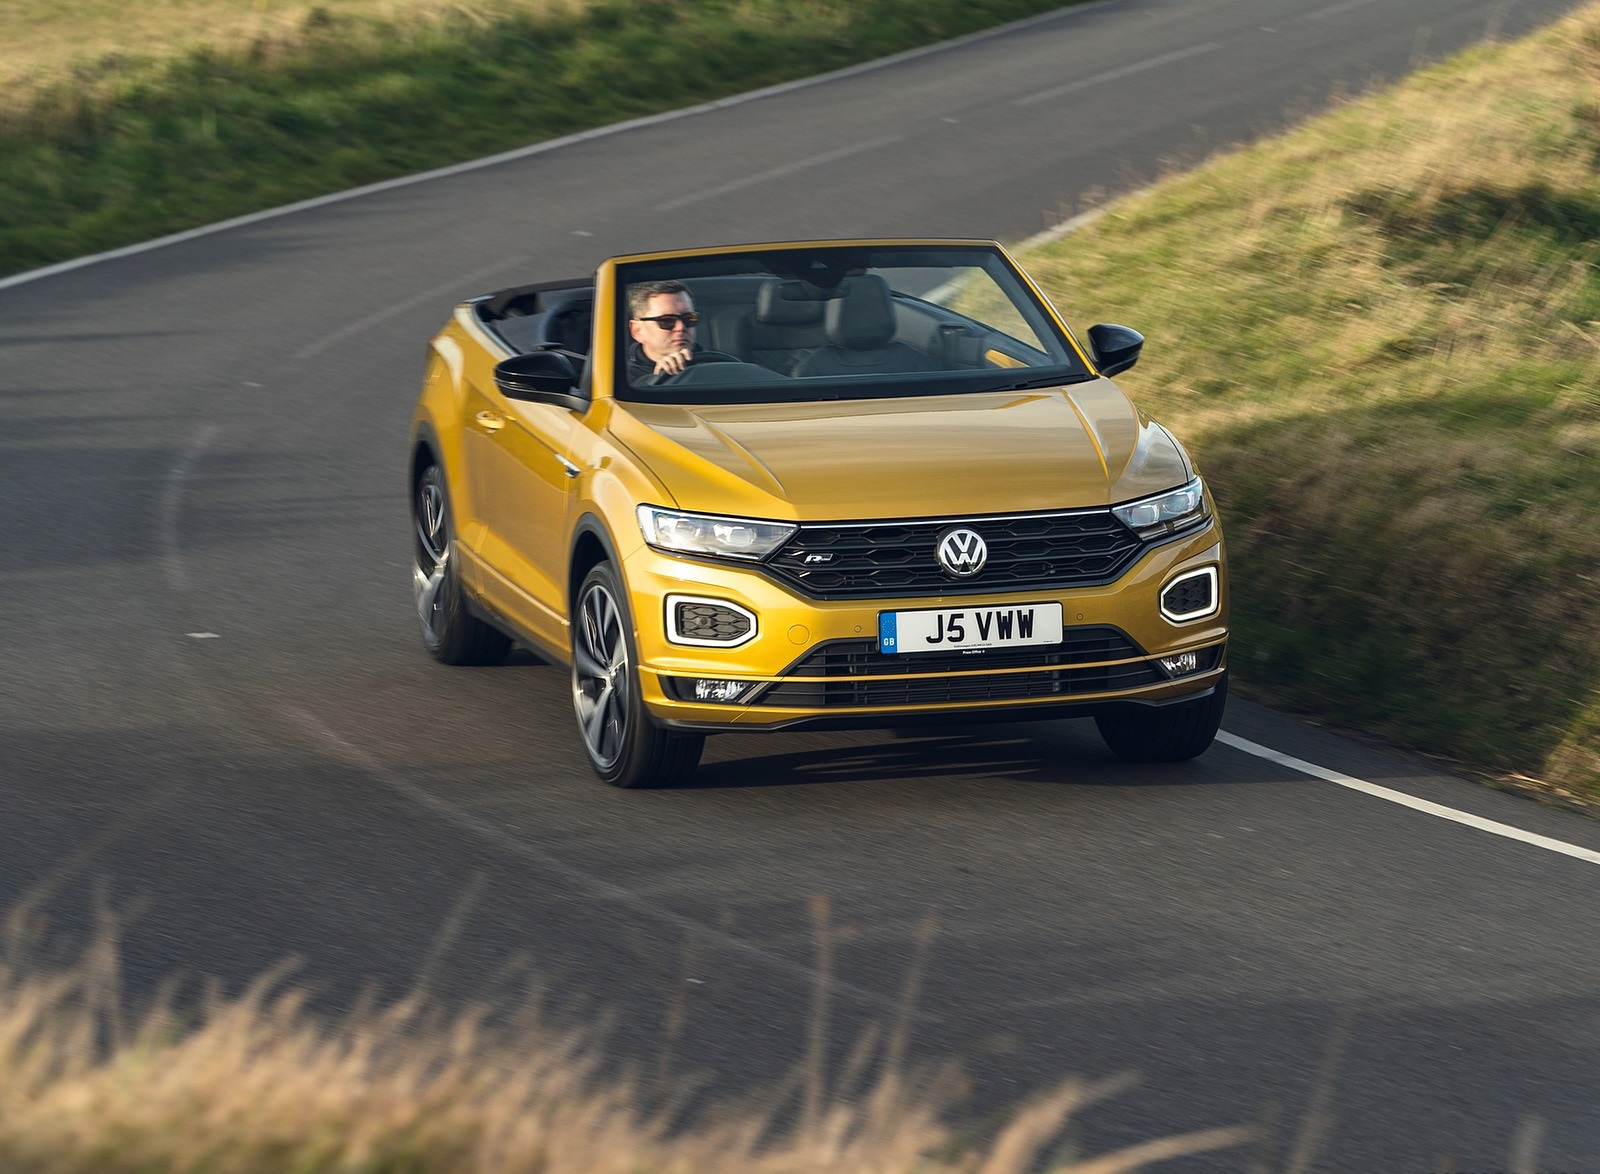 2020 Volkswagen T-Roc R-Line Cabriolet (UK-Spec) Front Wallpapers (7)